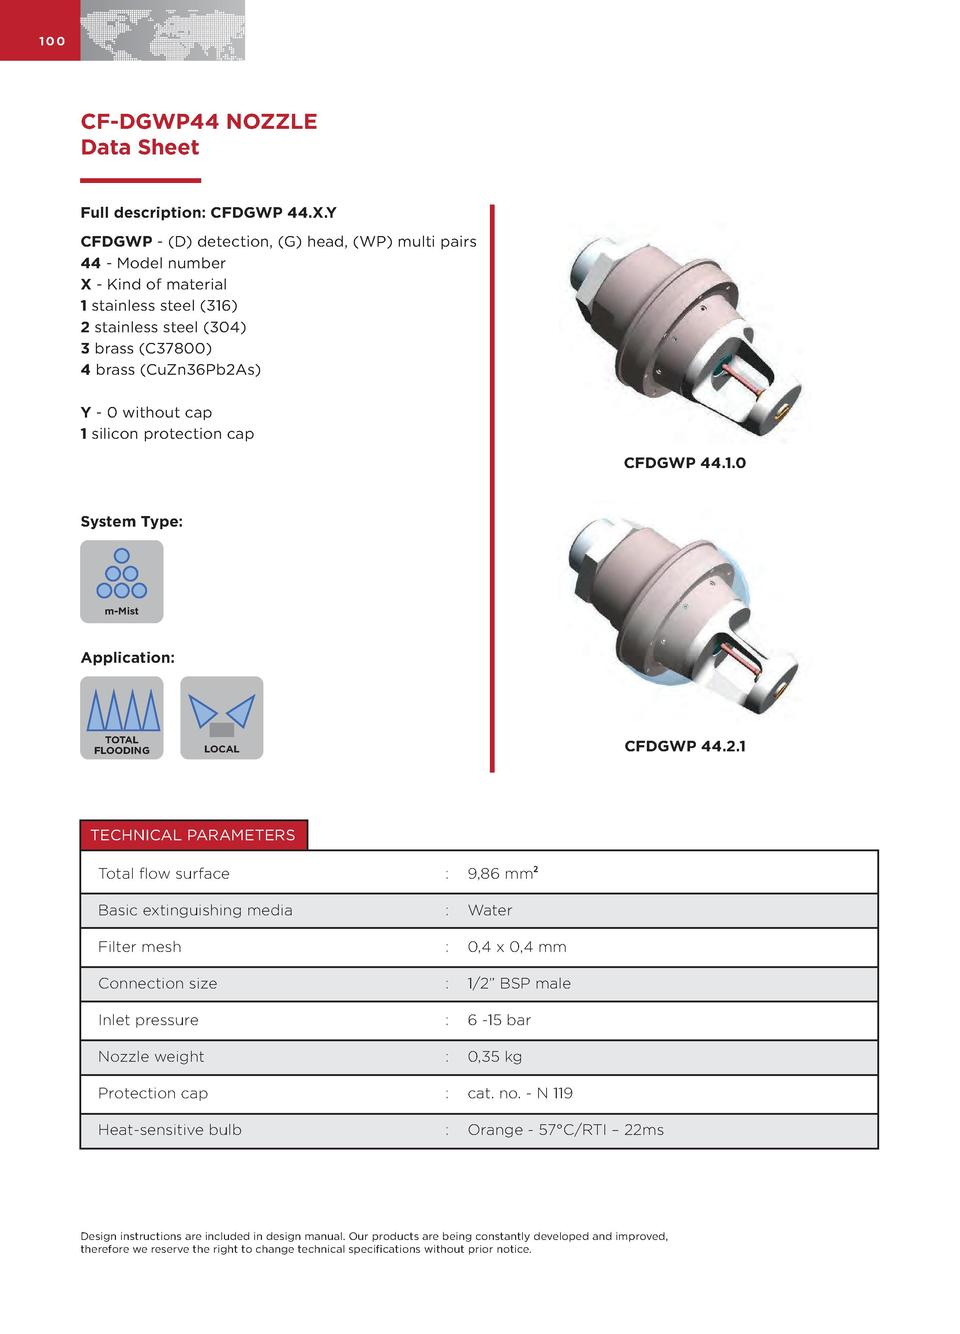 100  CF-DGWP44 NOZZLE Data Sheet Full description  CFDGWP 44.X.Y CFDGWP -  D  detection,  G  head,  WP  multi pairs 44 - M...